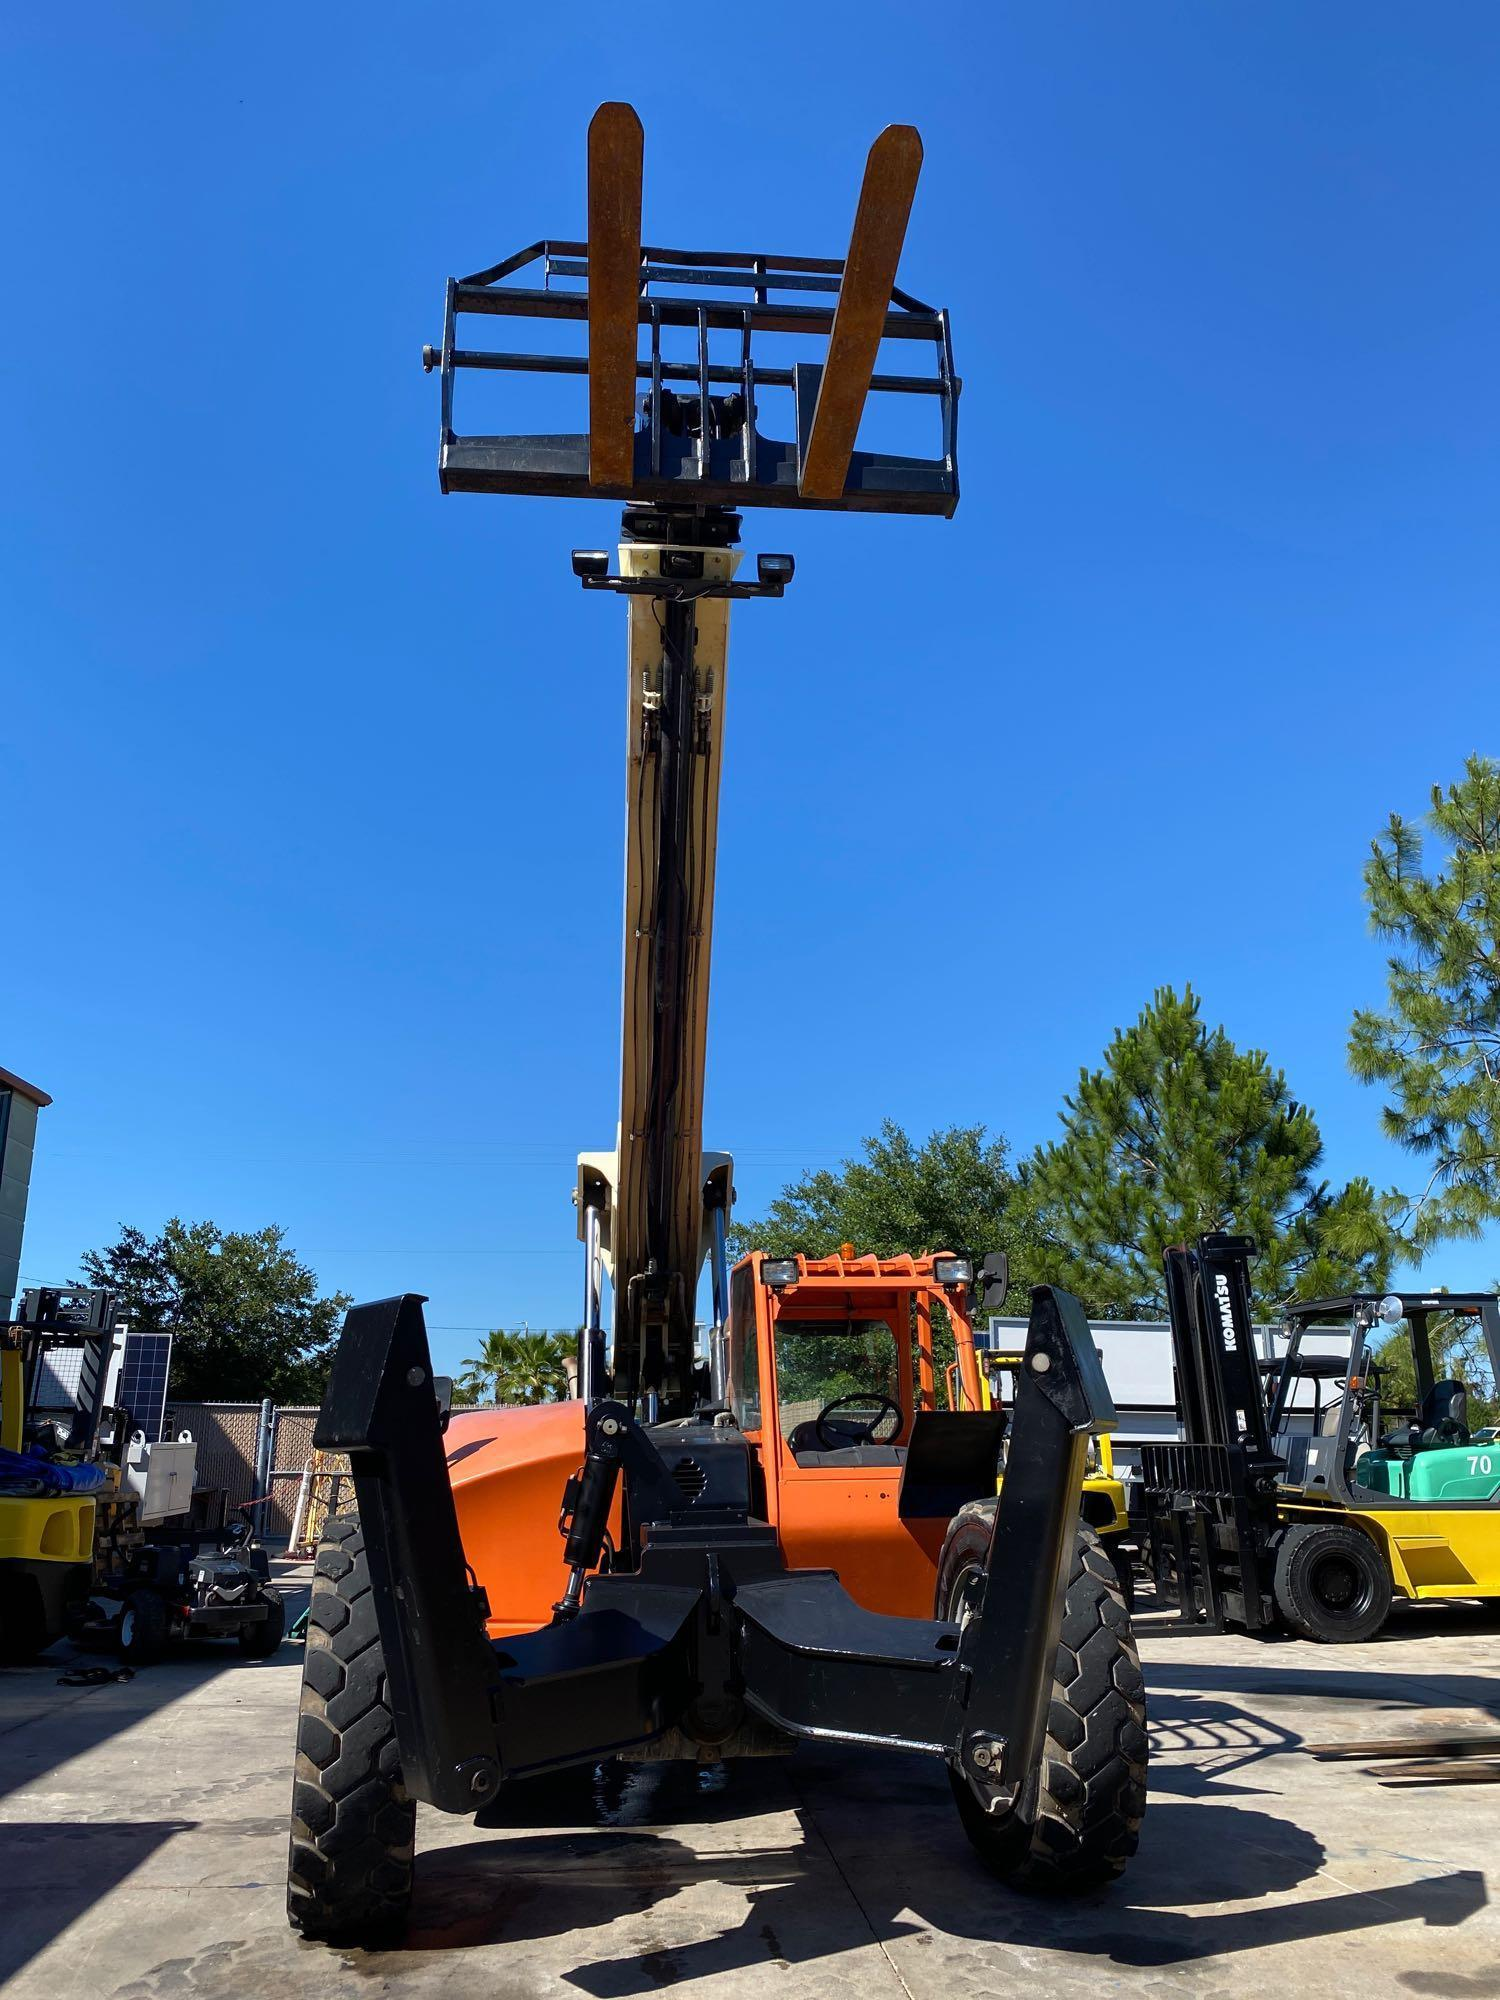 2013 JLG TELESCOPIC FORKLIFT MODEL G10-55A, 10,000 LB CAPACITY, OUTRIGGERS, 5,717.7 HOURS SHOWING, C - Image 2 of 16